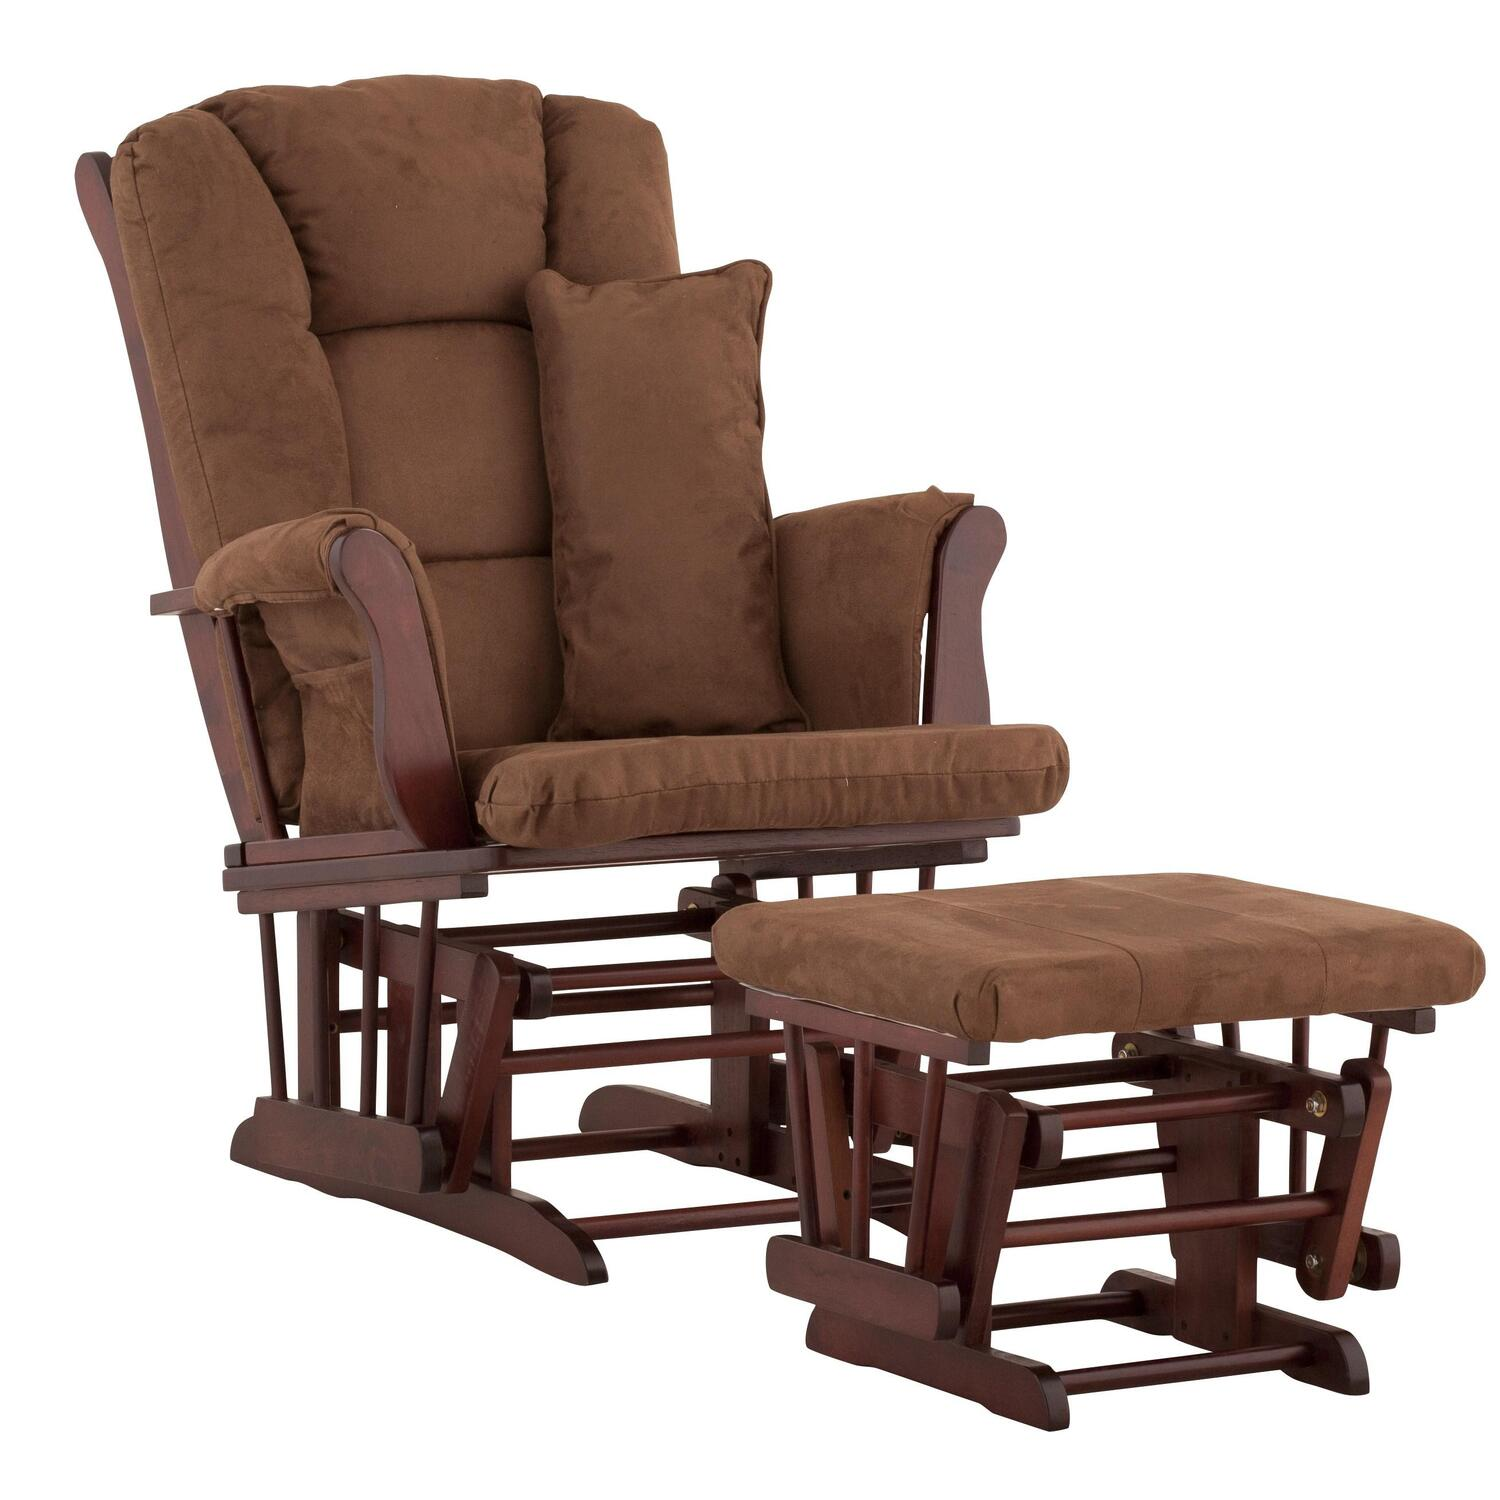 stork craft custom tuscany glider and ottoman with free matching lumbar support pillow. Black Bedroom Furniture Sets. Home Design Ideas